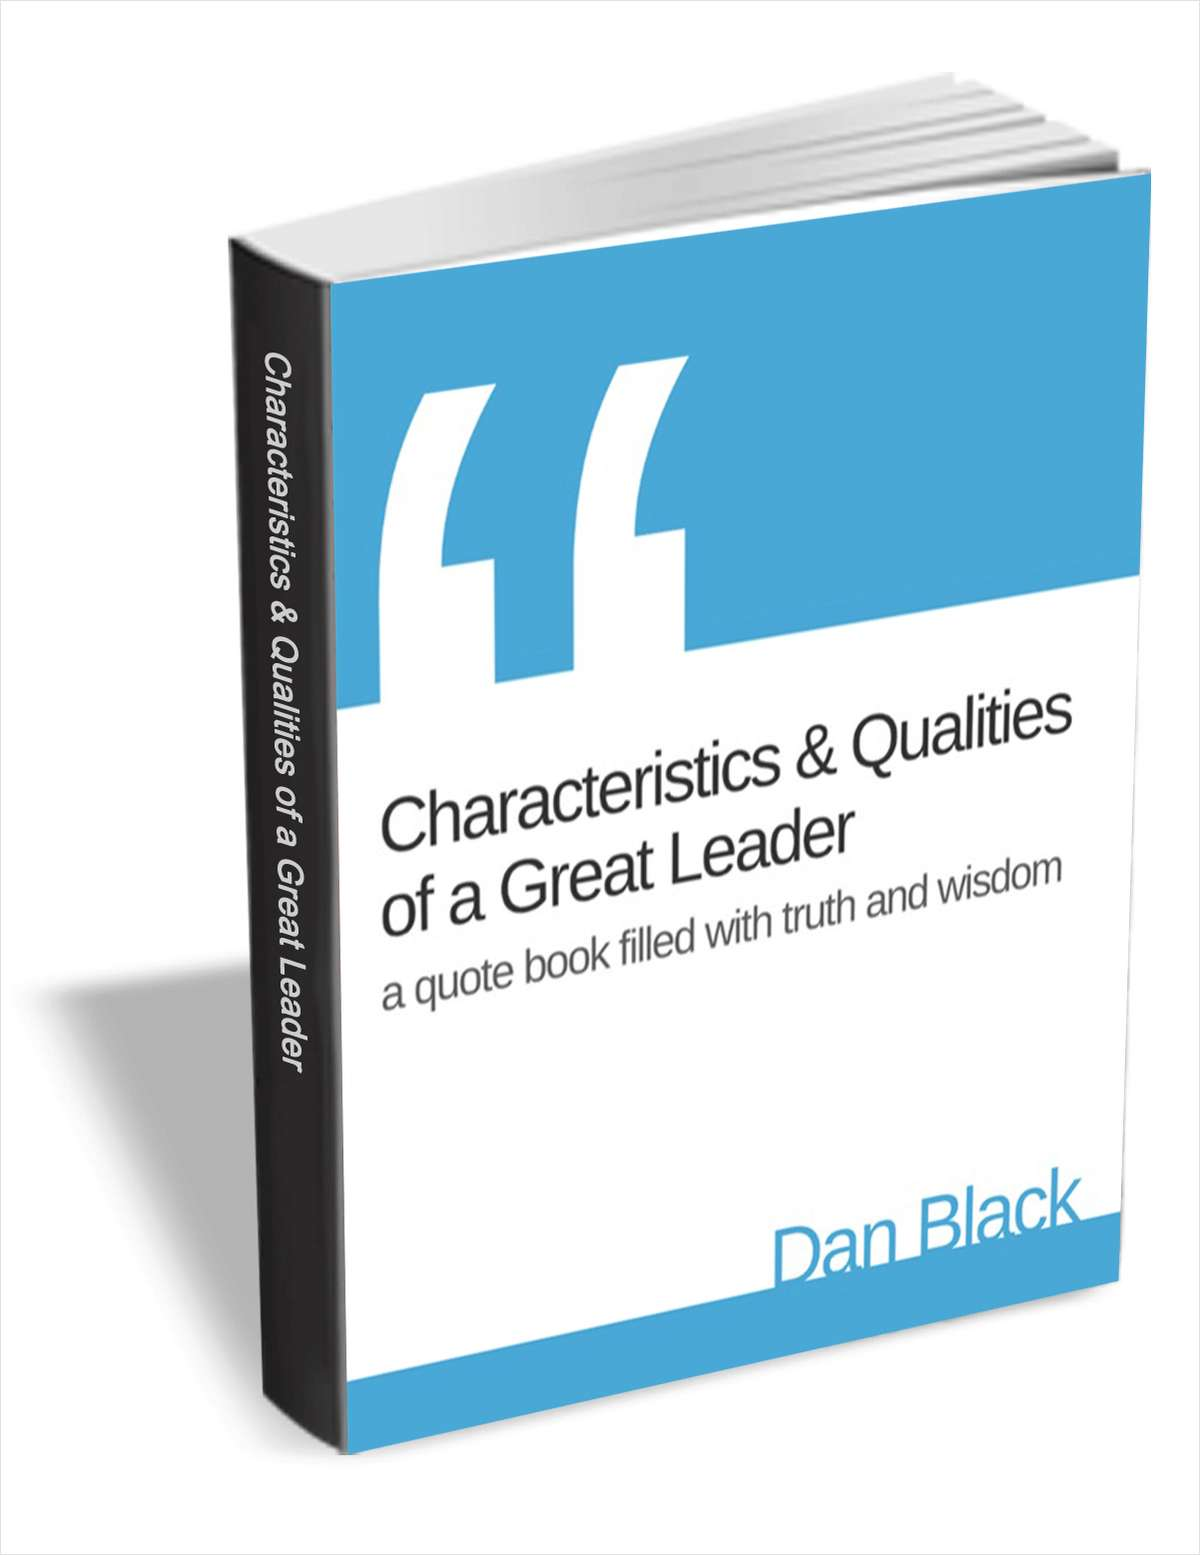 Characteristics & Qualities of a Great Leader - Quote Book